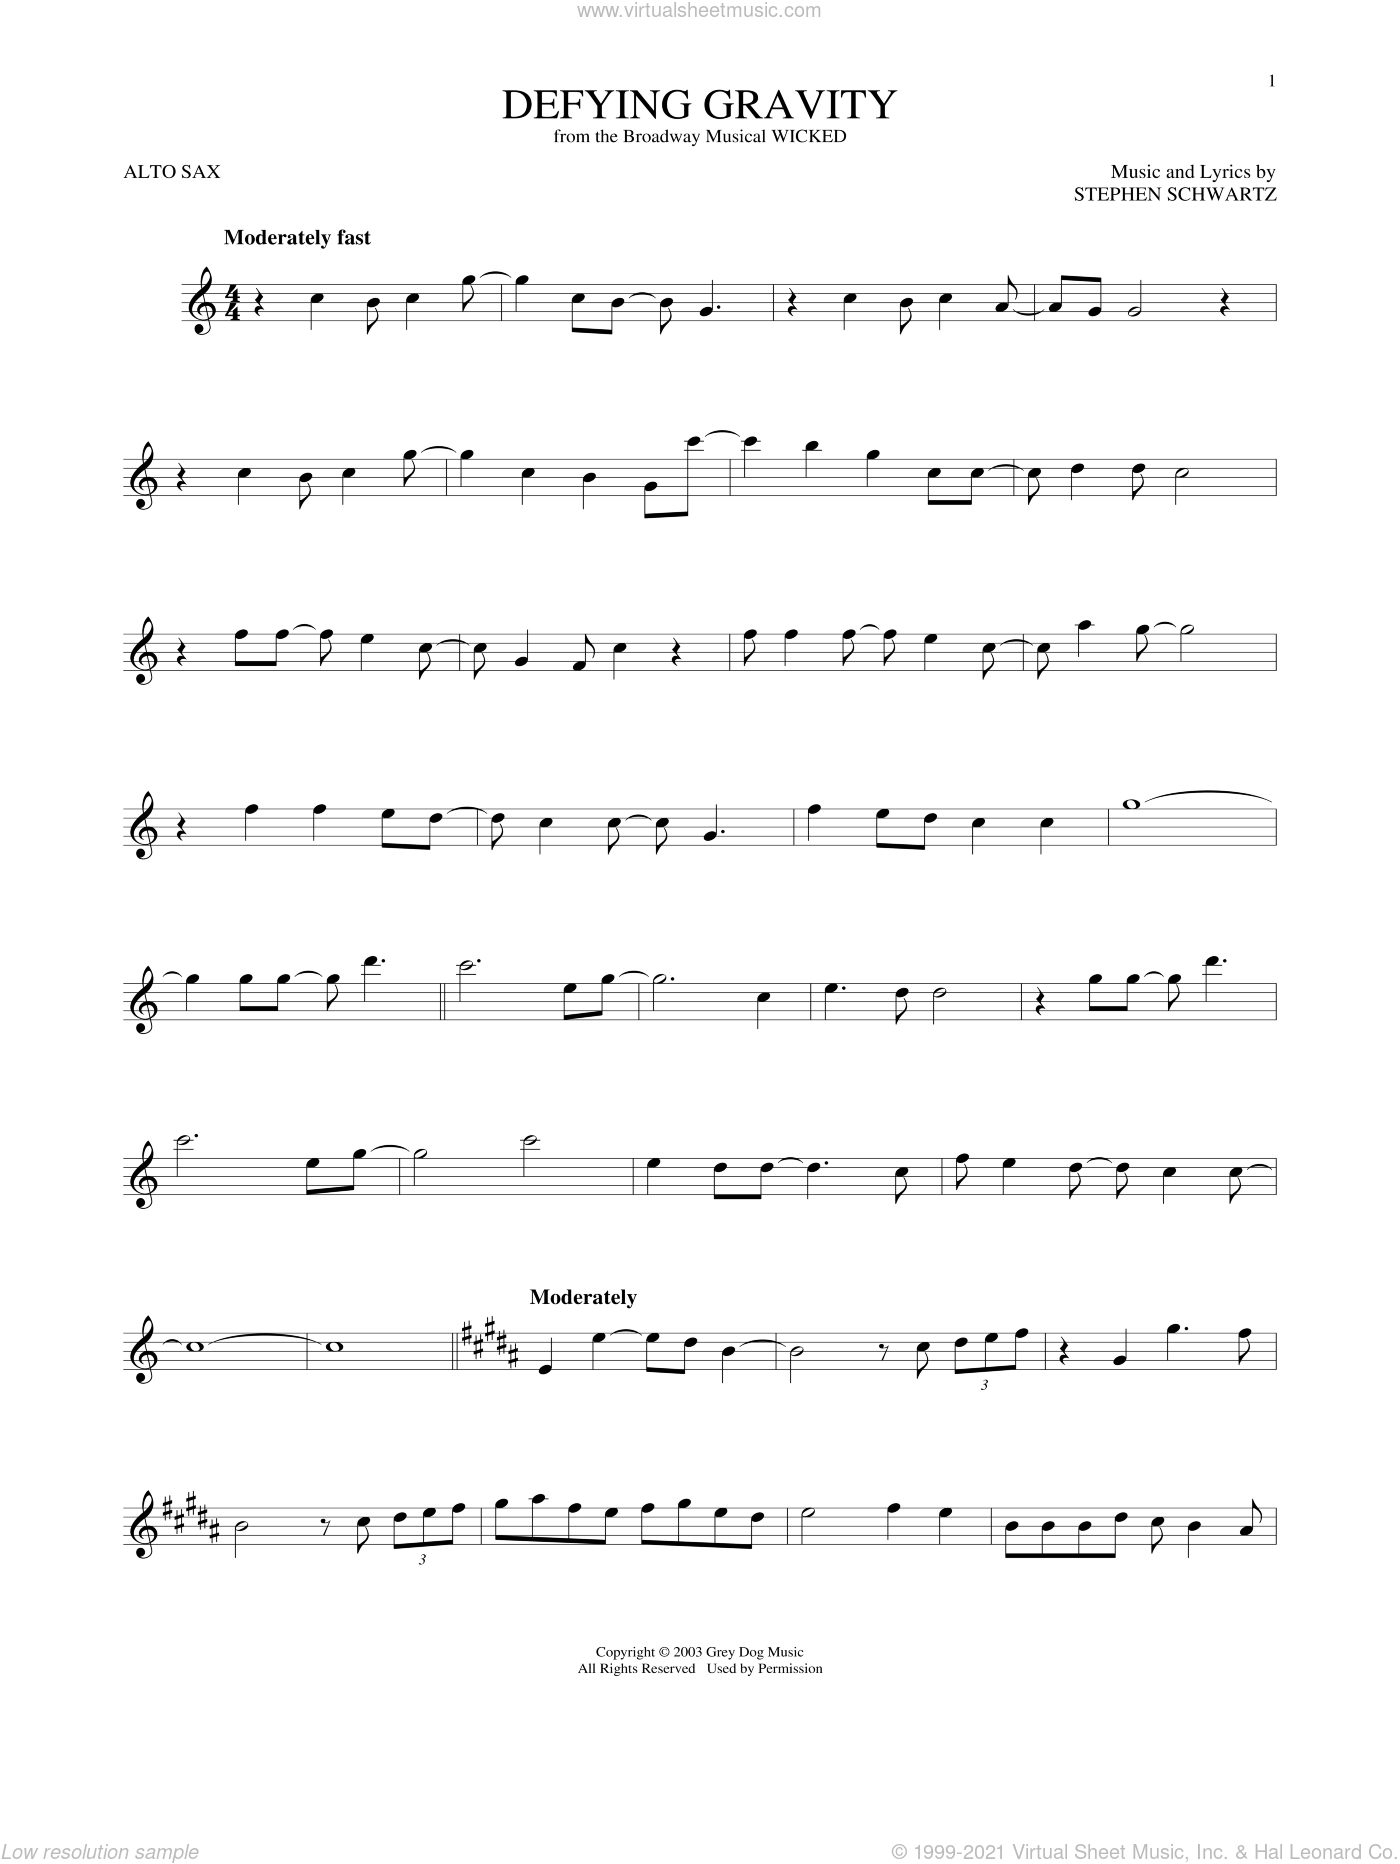 Defying Gravity sheet music for alto saxophone solo by Stephen Schwartz, intermediate skill level